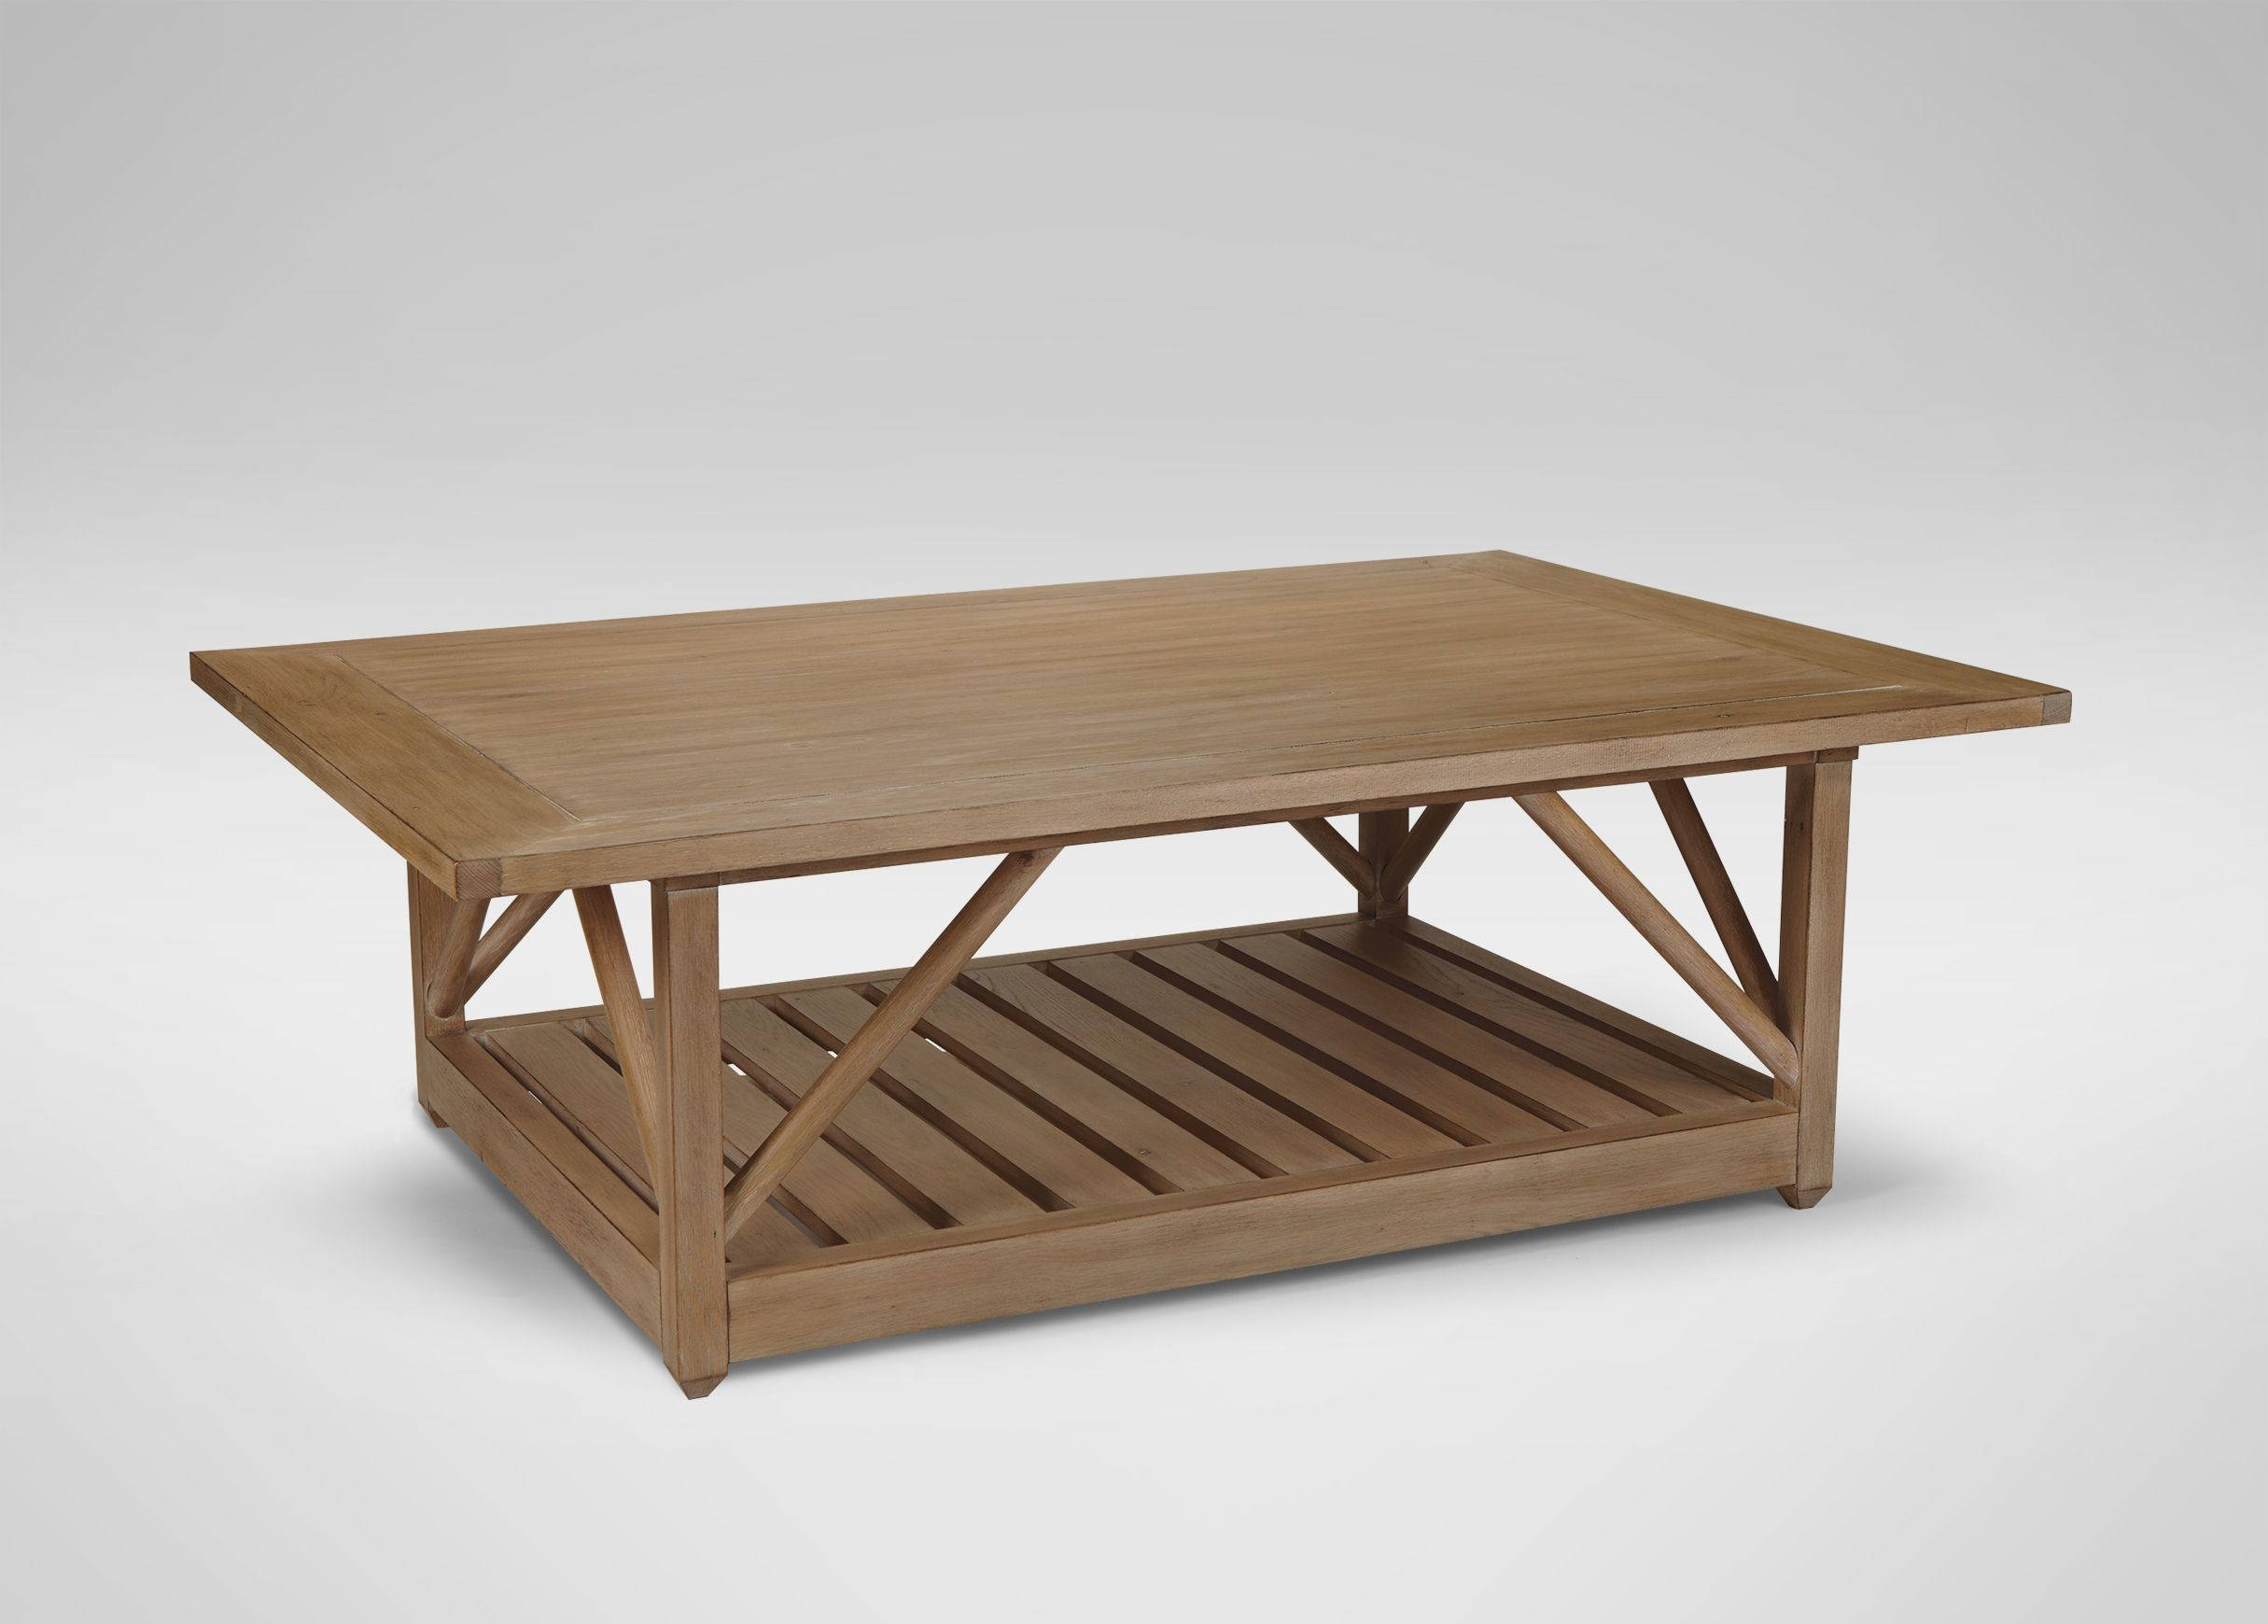 Picture Of Artistic Reclaimed Wood Coffee Tables – Reclaimed Wood in Oversized Square Coffee Tables (Image 27 of 30)